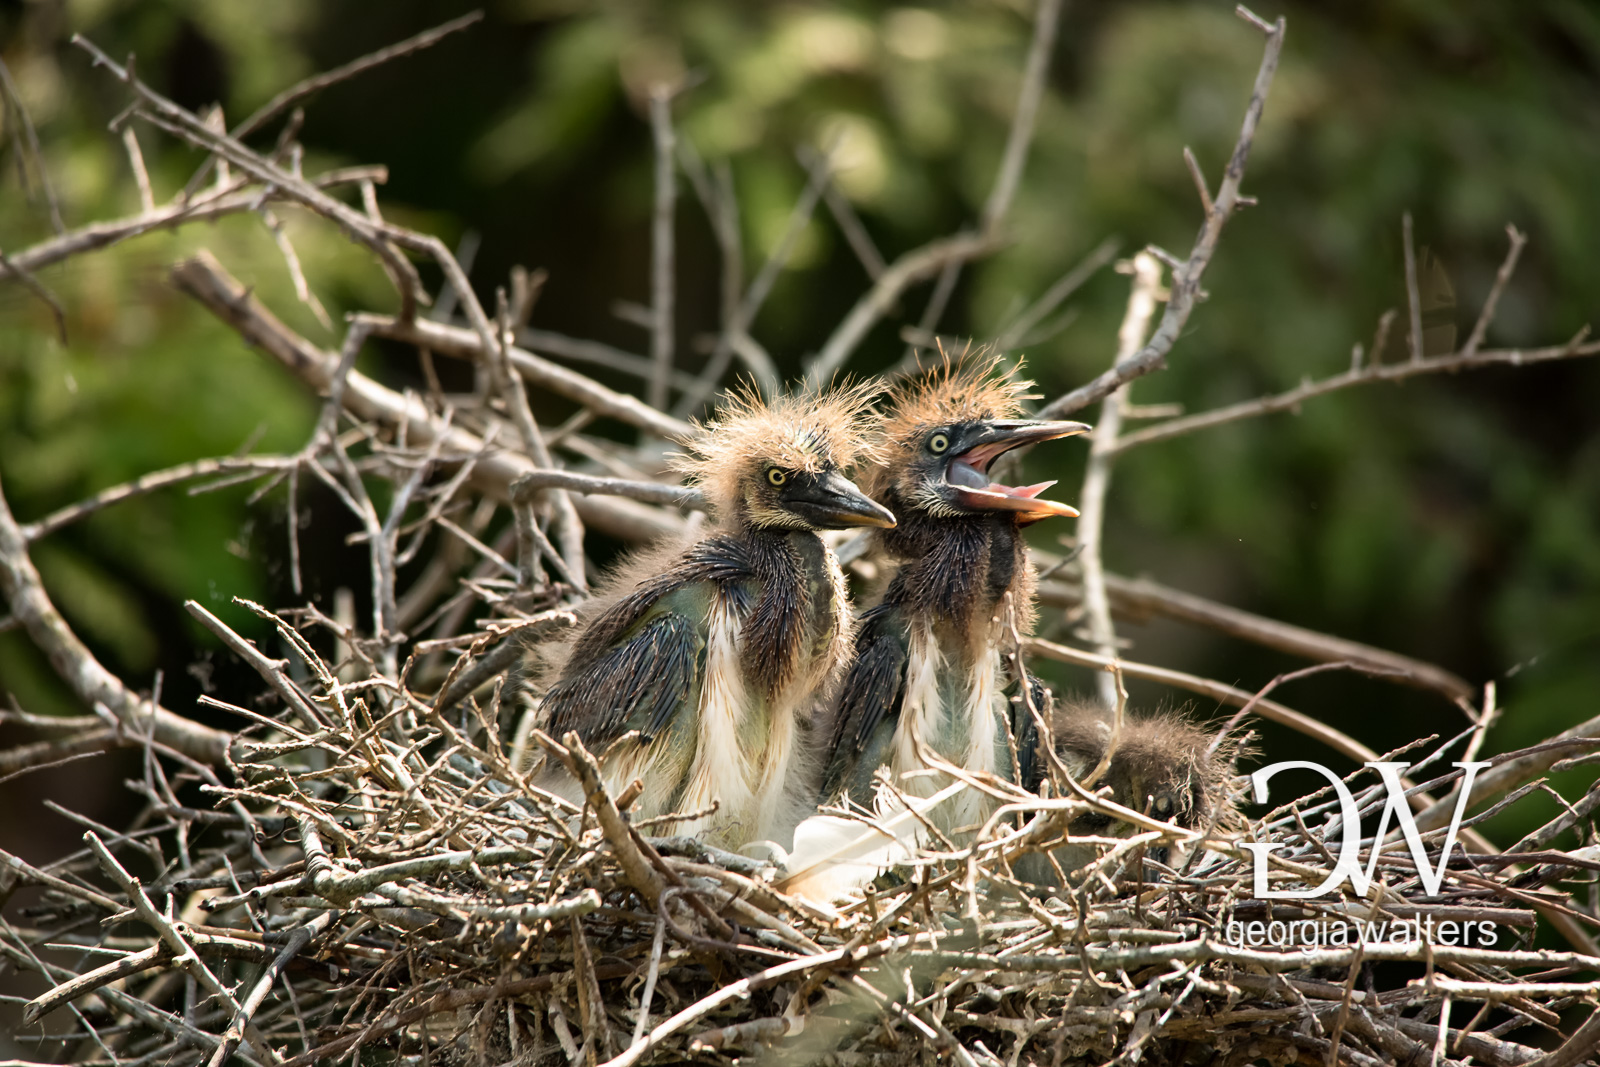 Tri-colored heron chicks call for mom.